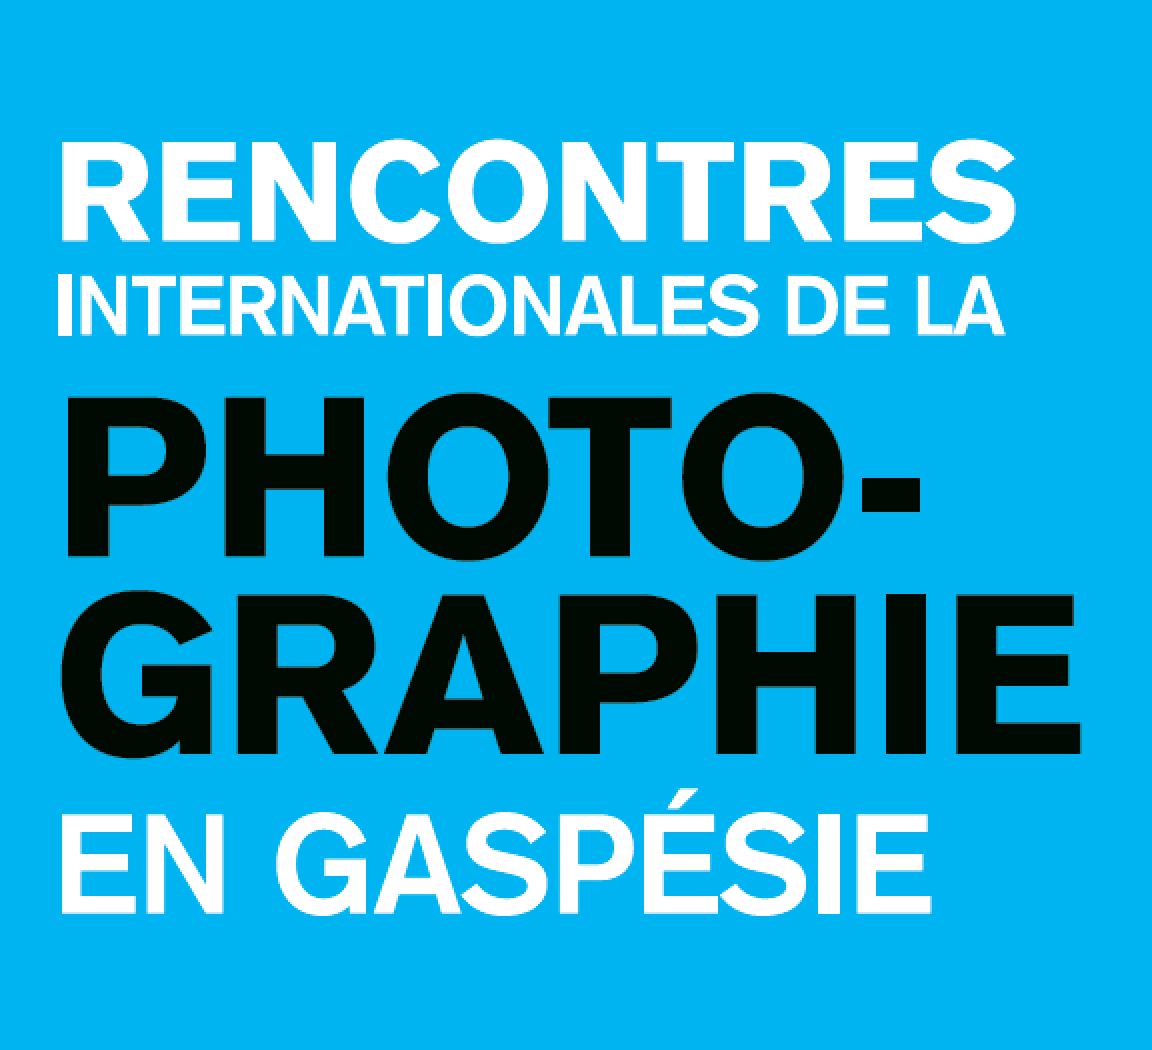 Rencontres Internationales de la photographie en Gaspesie